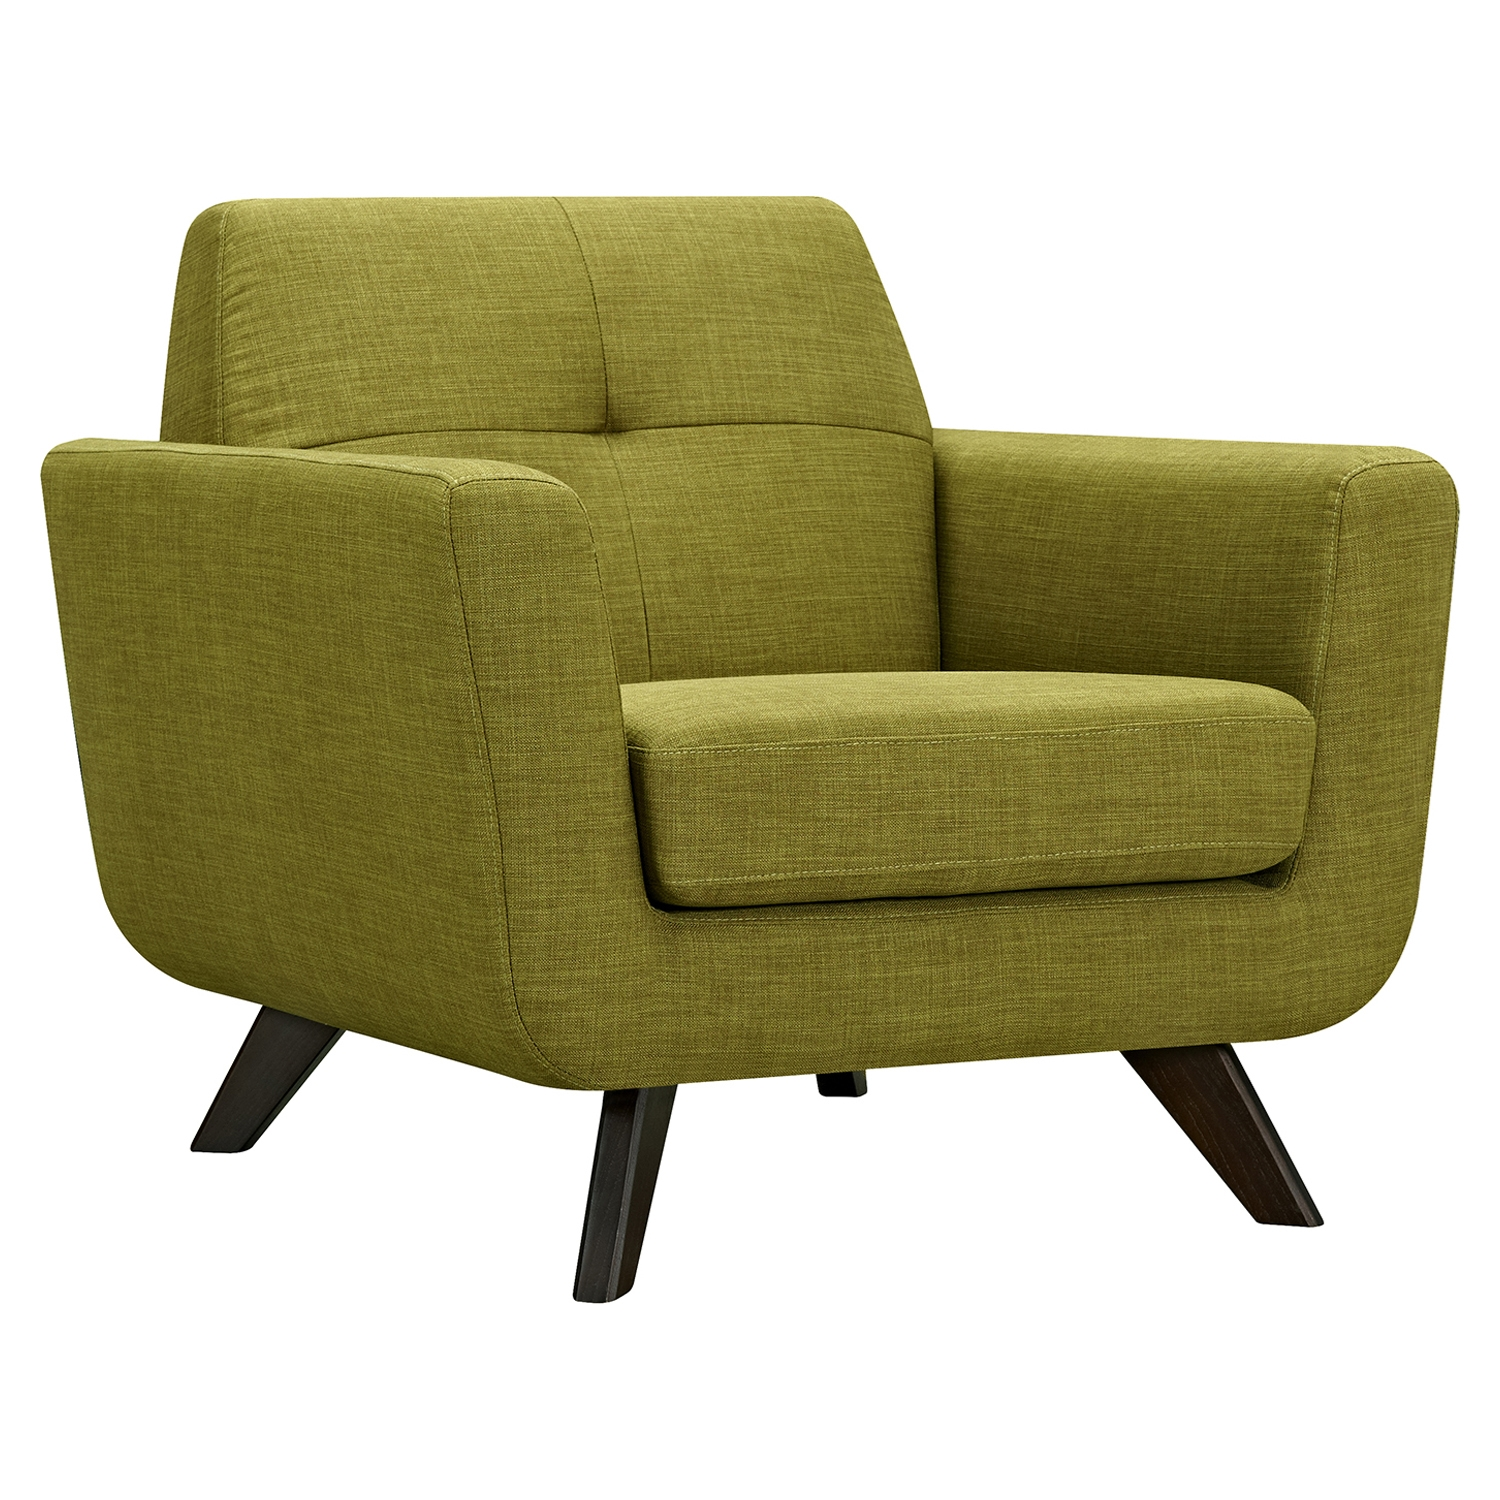 Dania Tufted Upholstery Armchair - Avocado Green - NYEK-224464